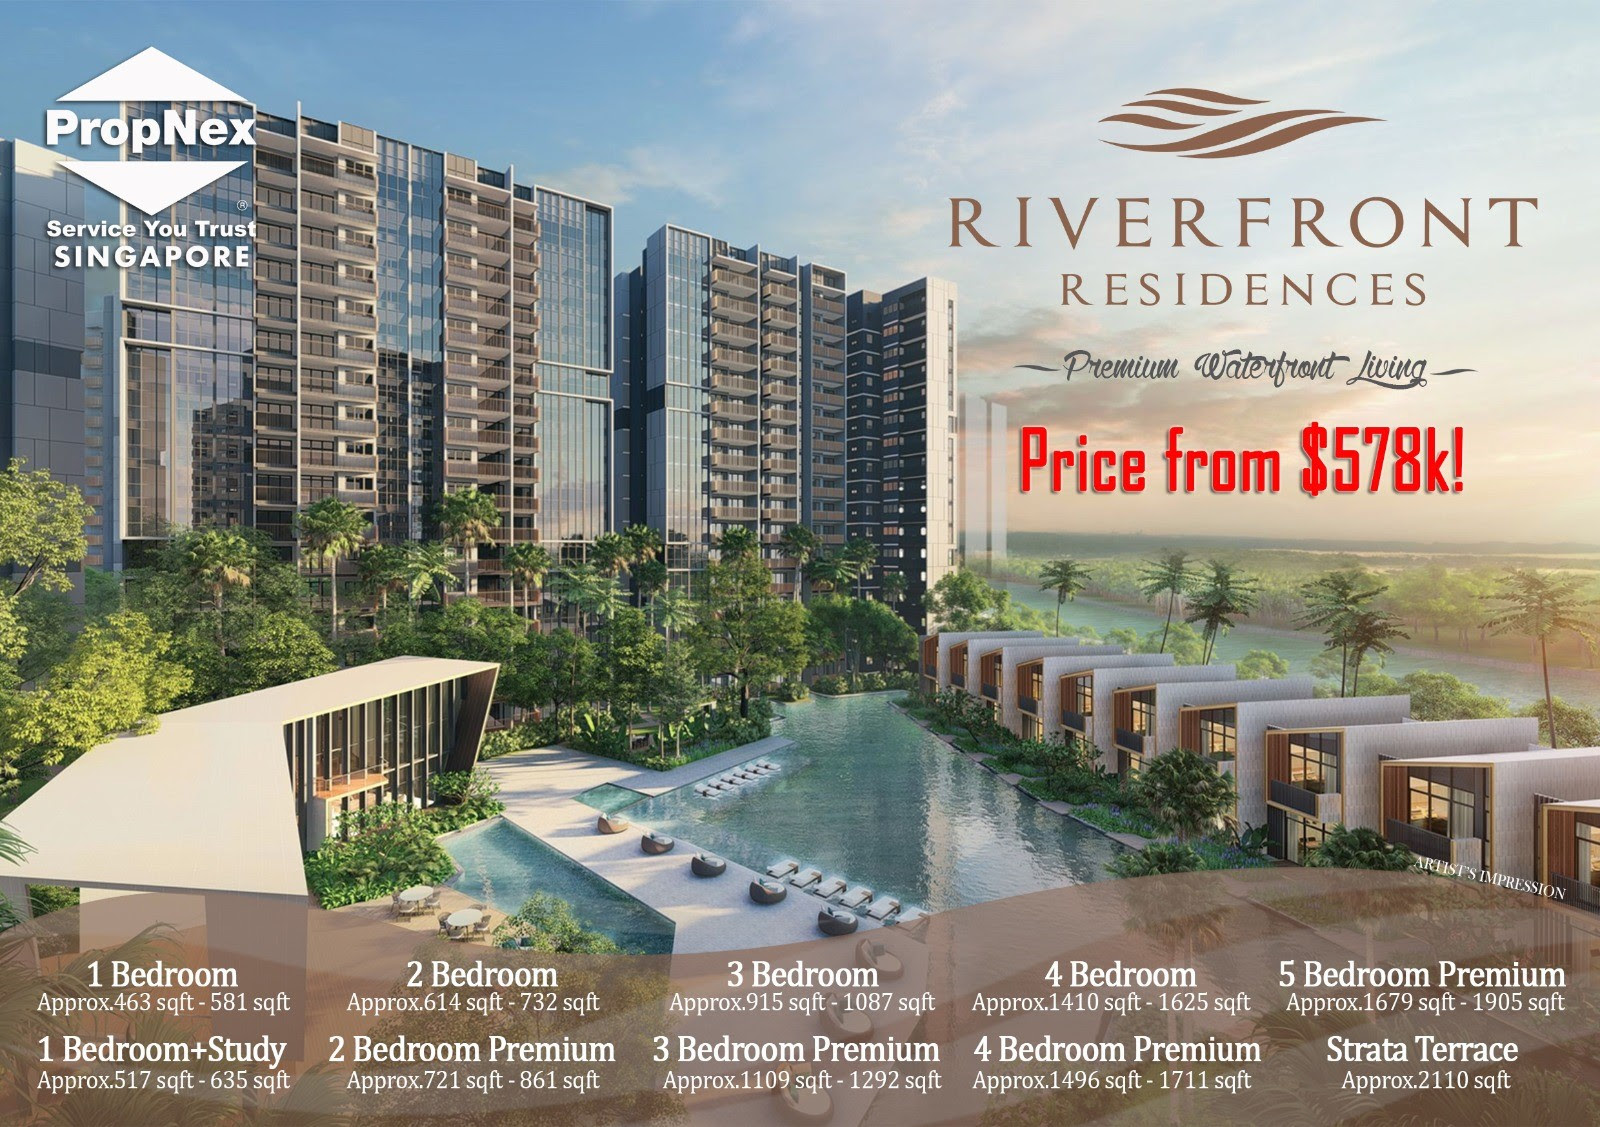 Riverfront Prices